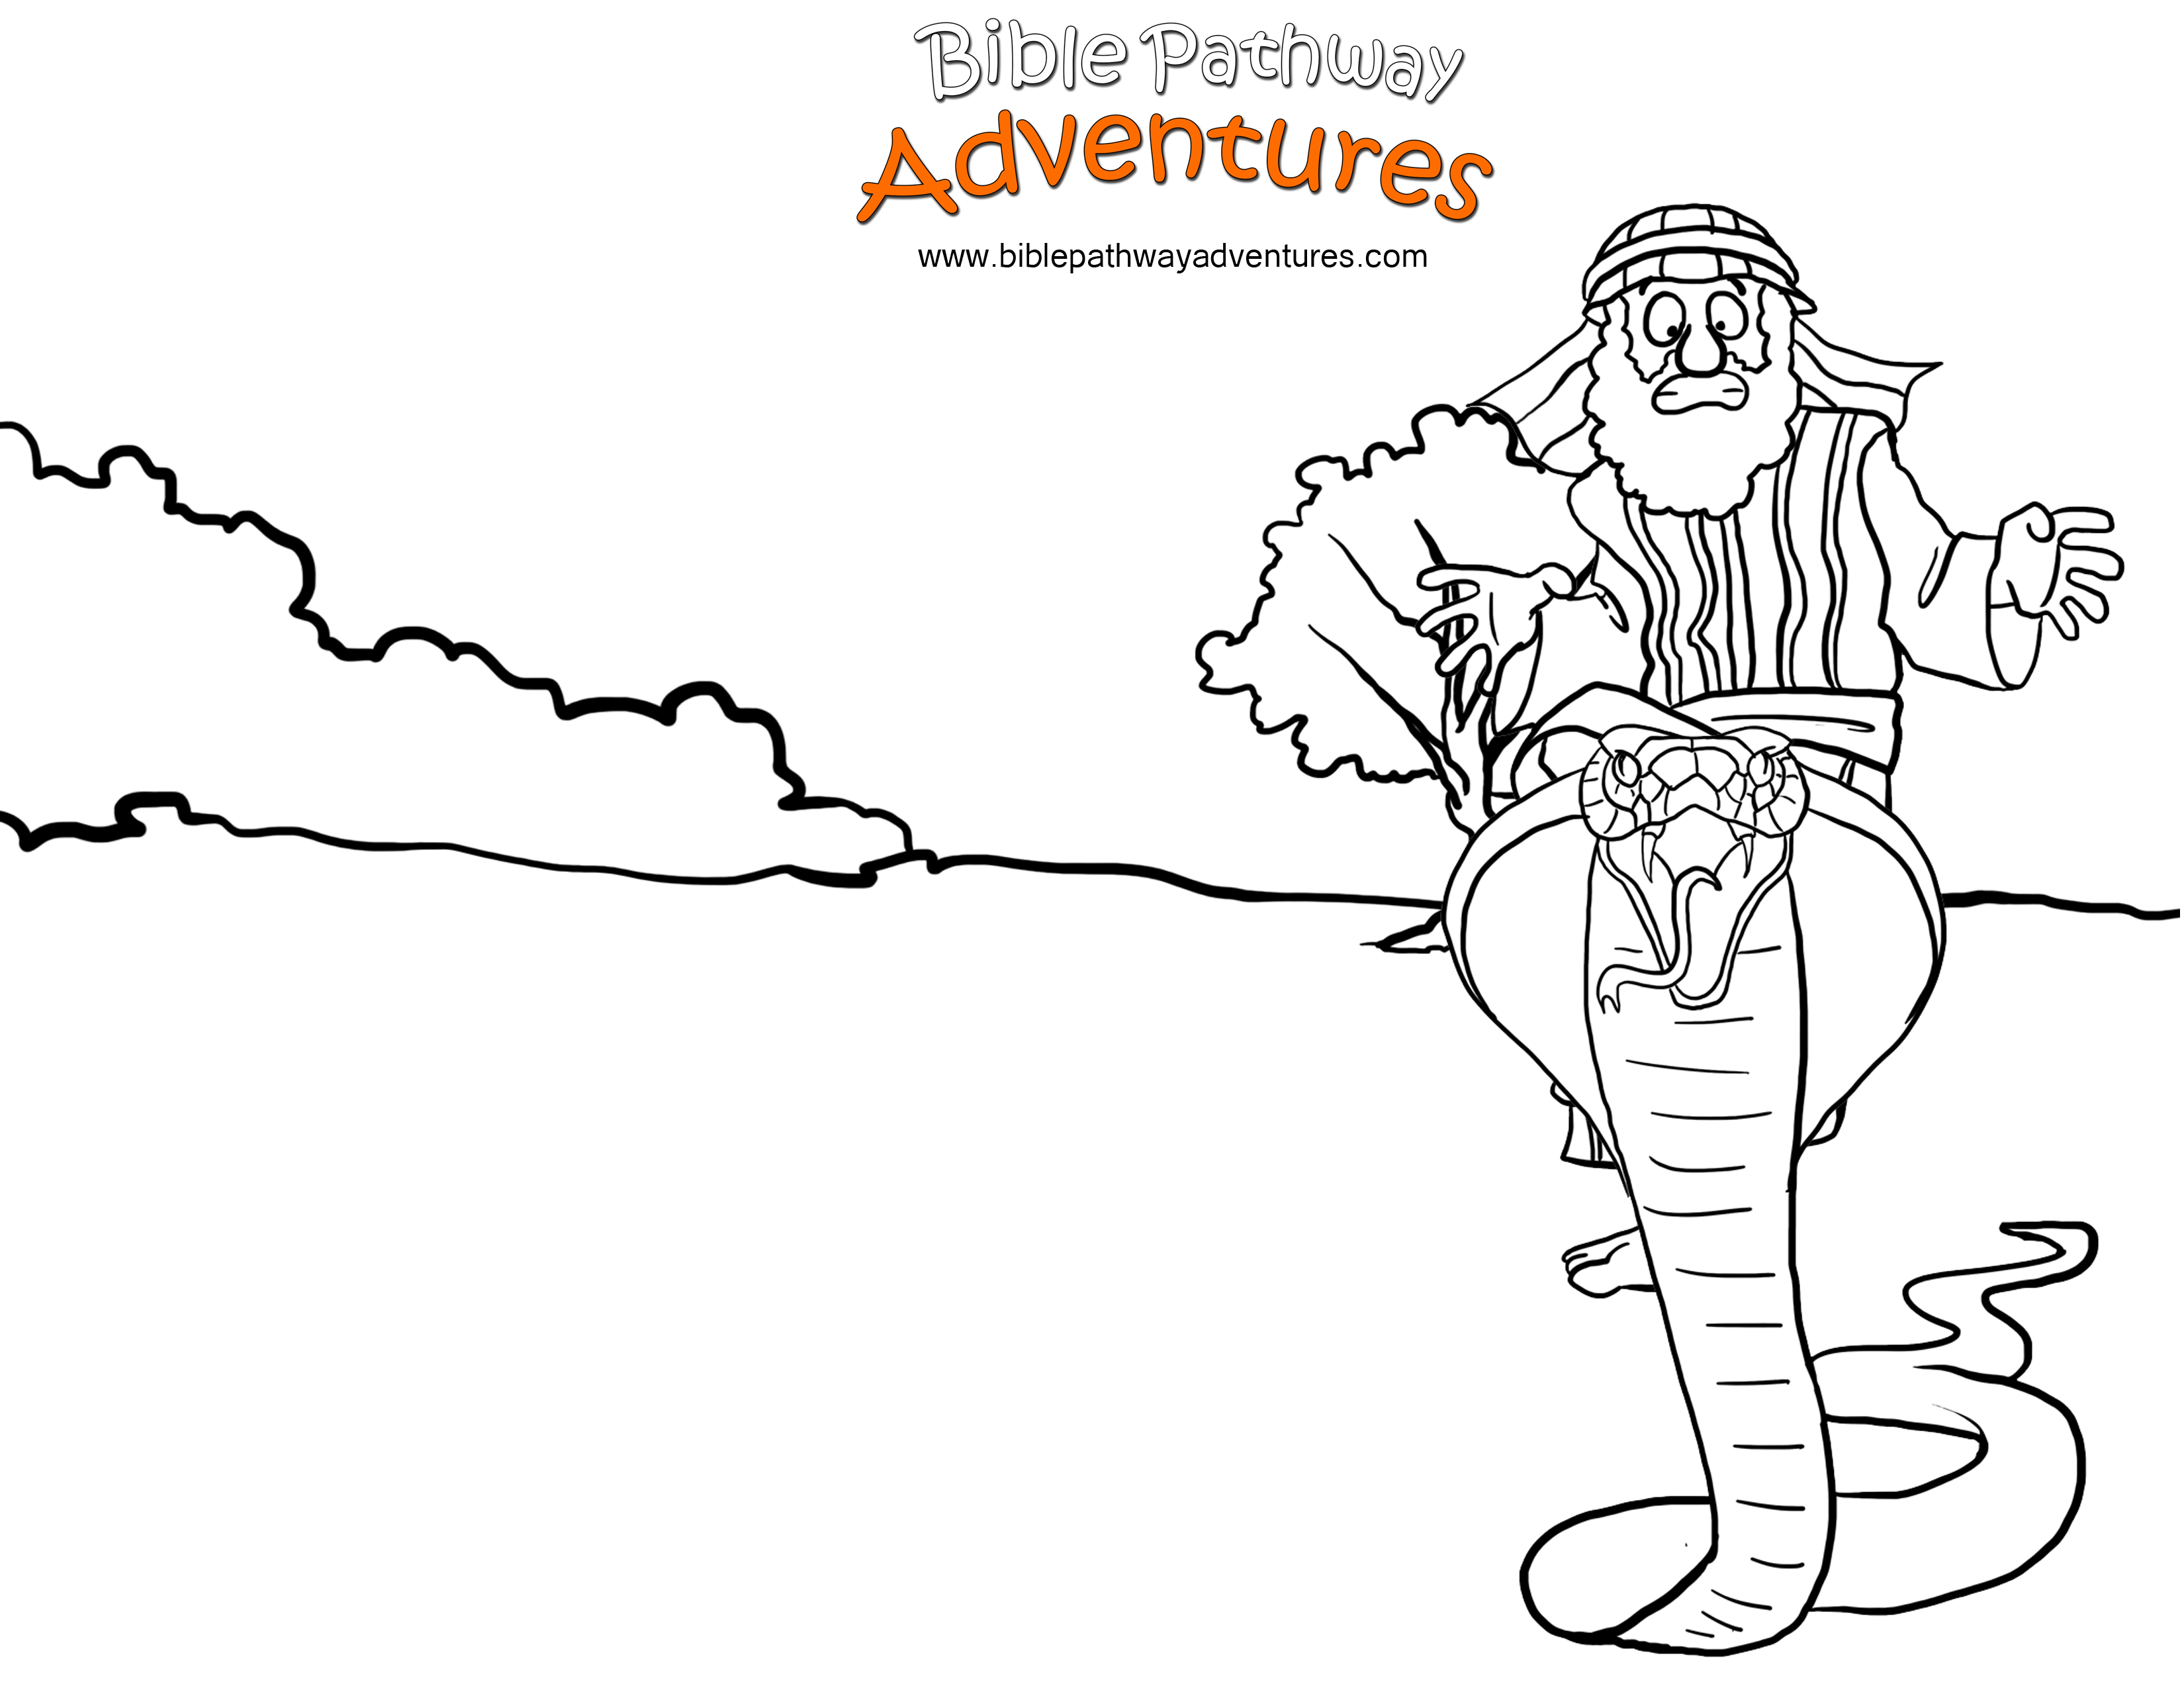 Coloring Pages A bible storyapp